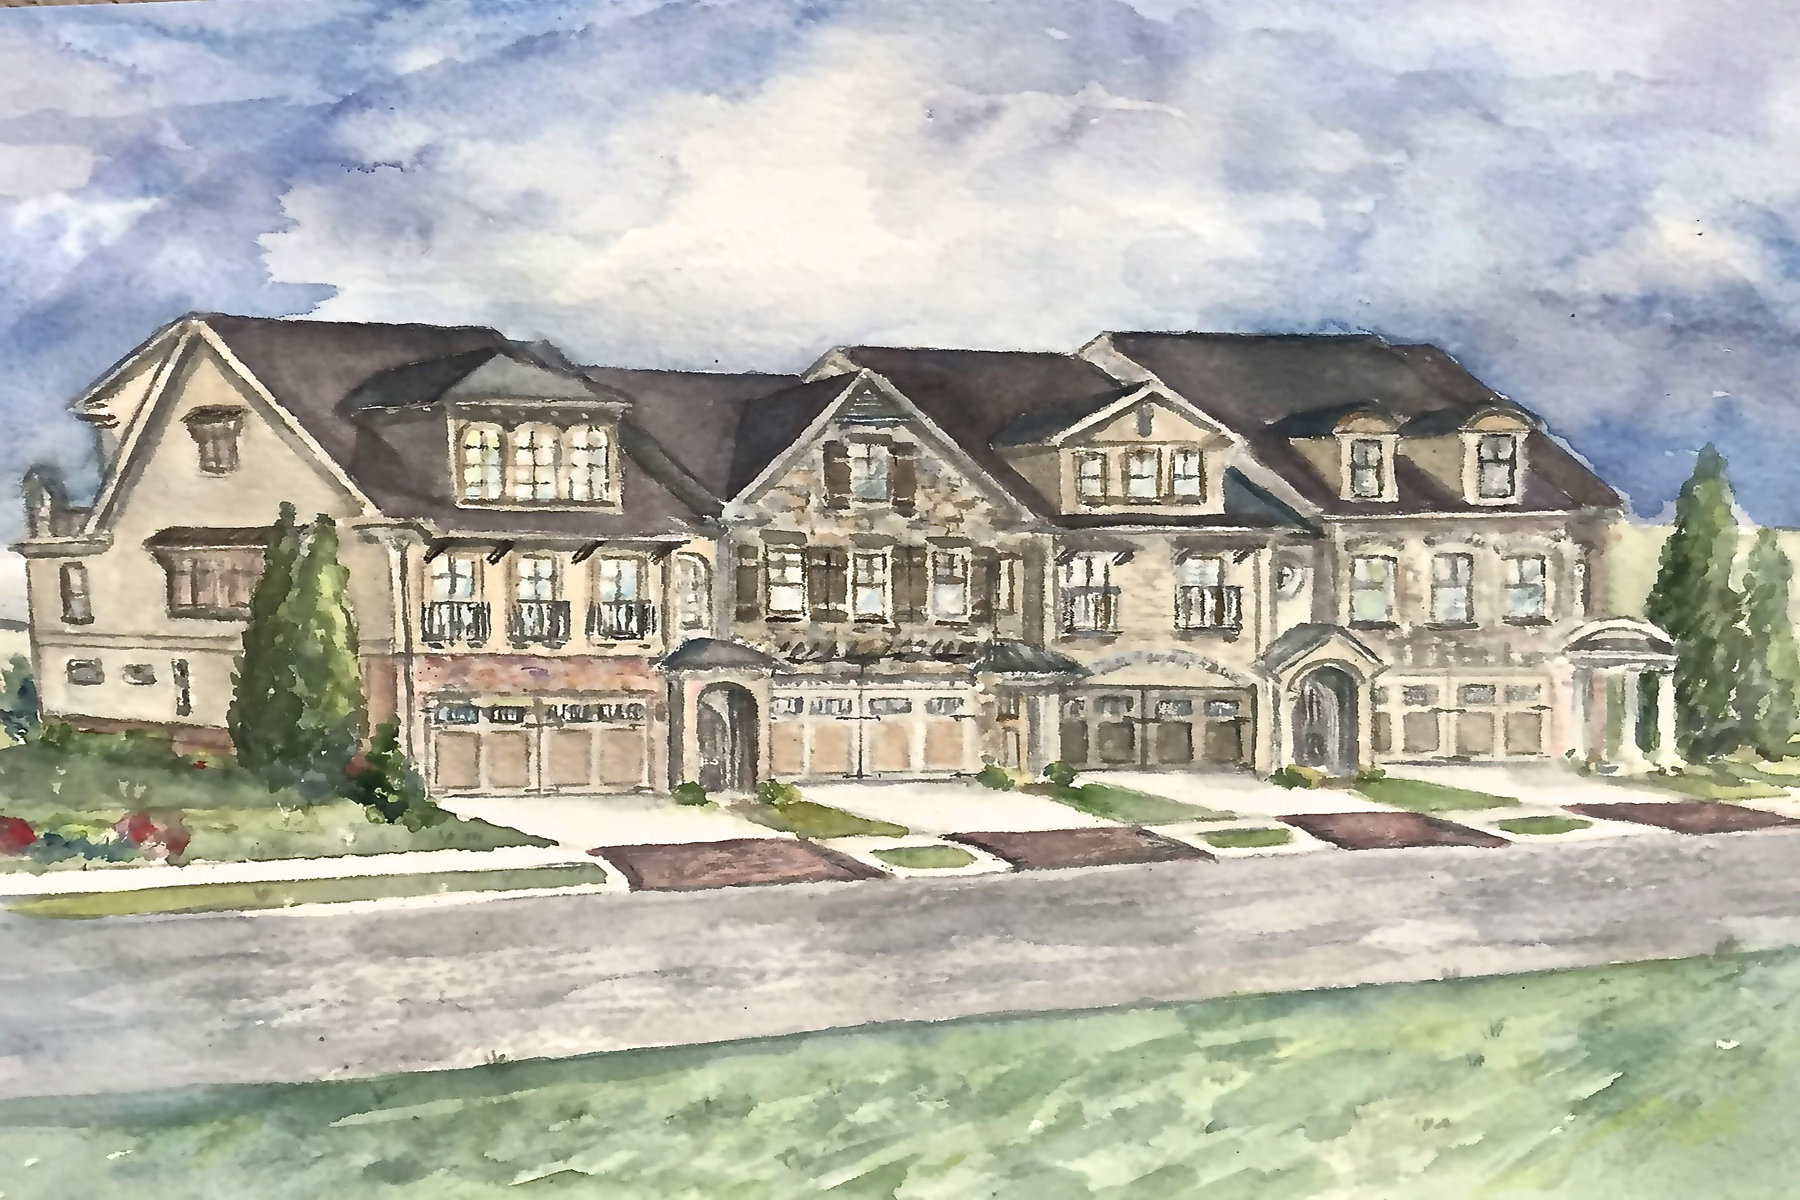 Single Family Home for Sale at Gated Enclave In Woodstock 300 Via del Corso Woodstock, Georgia 30188 United States